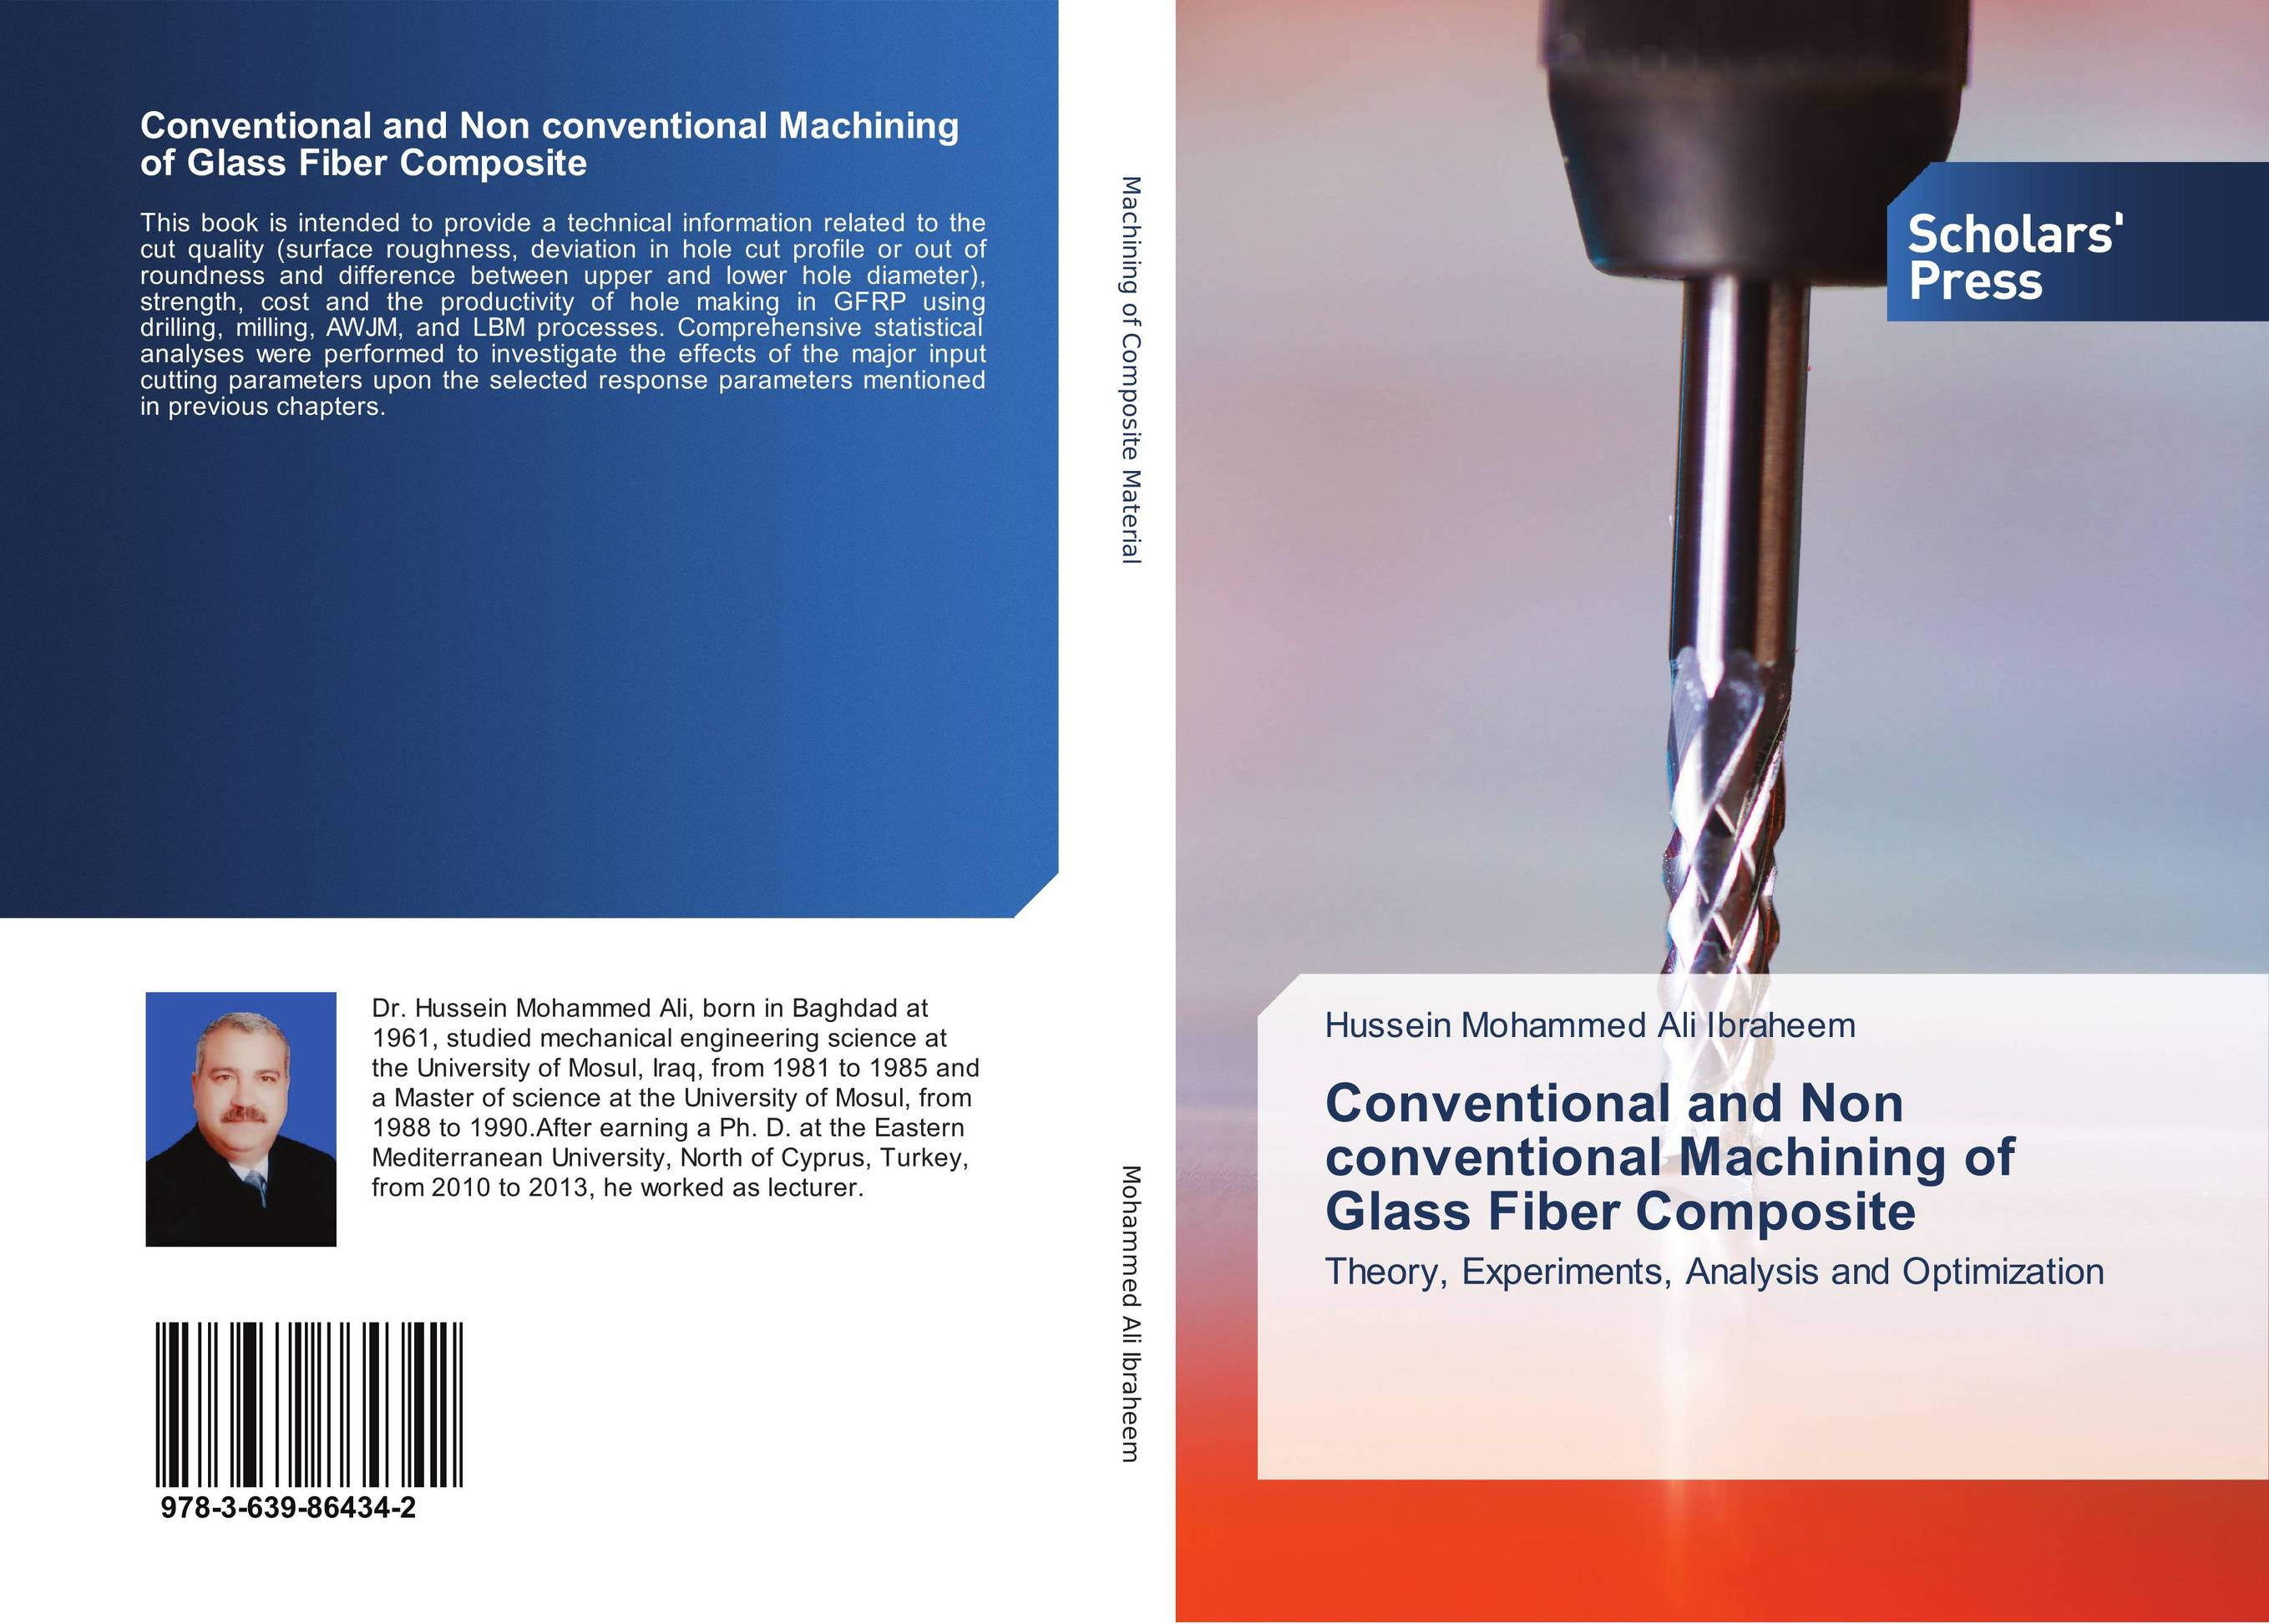 Conventional and Non conventional Machining of Glass Fiber Composite